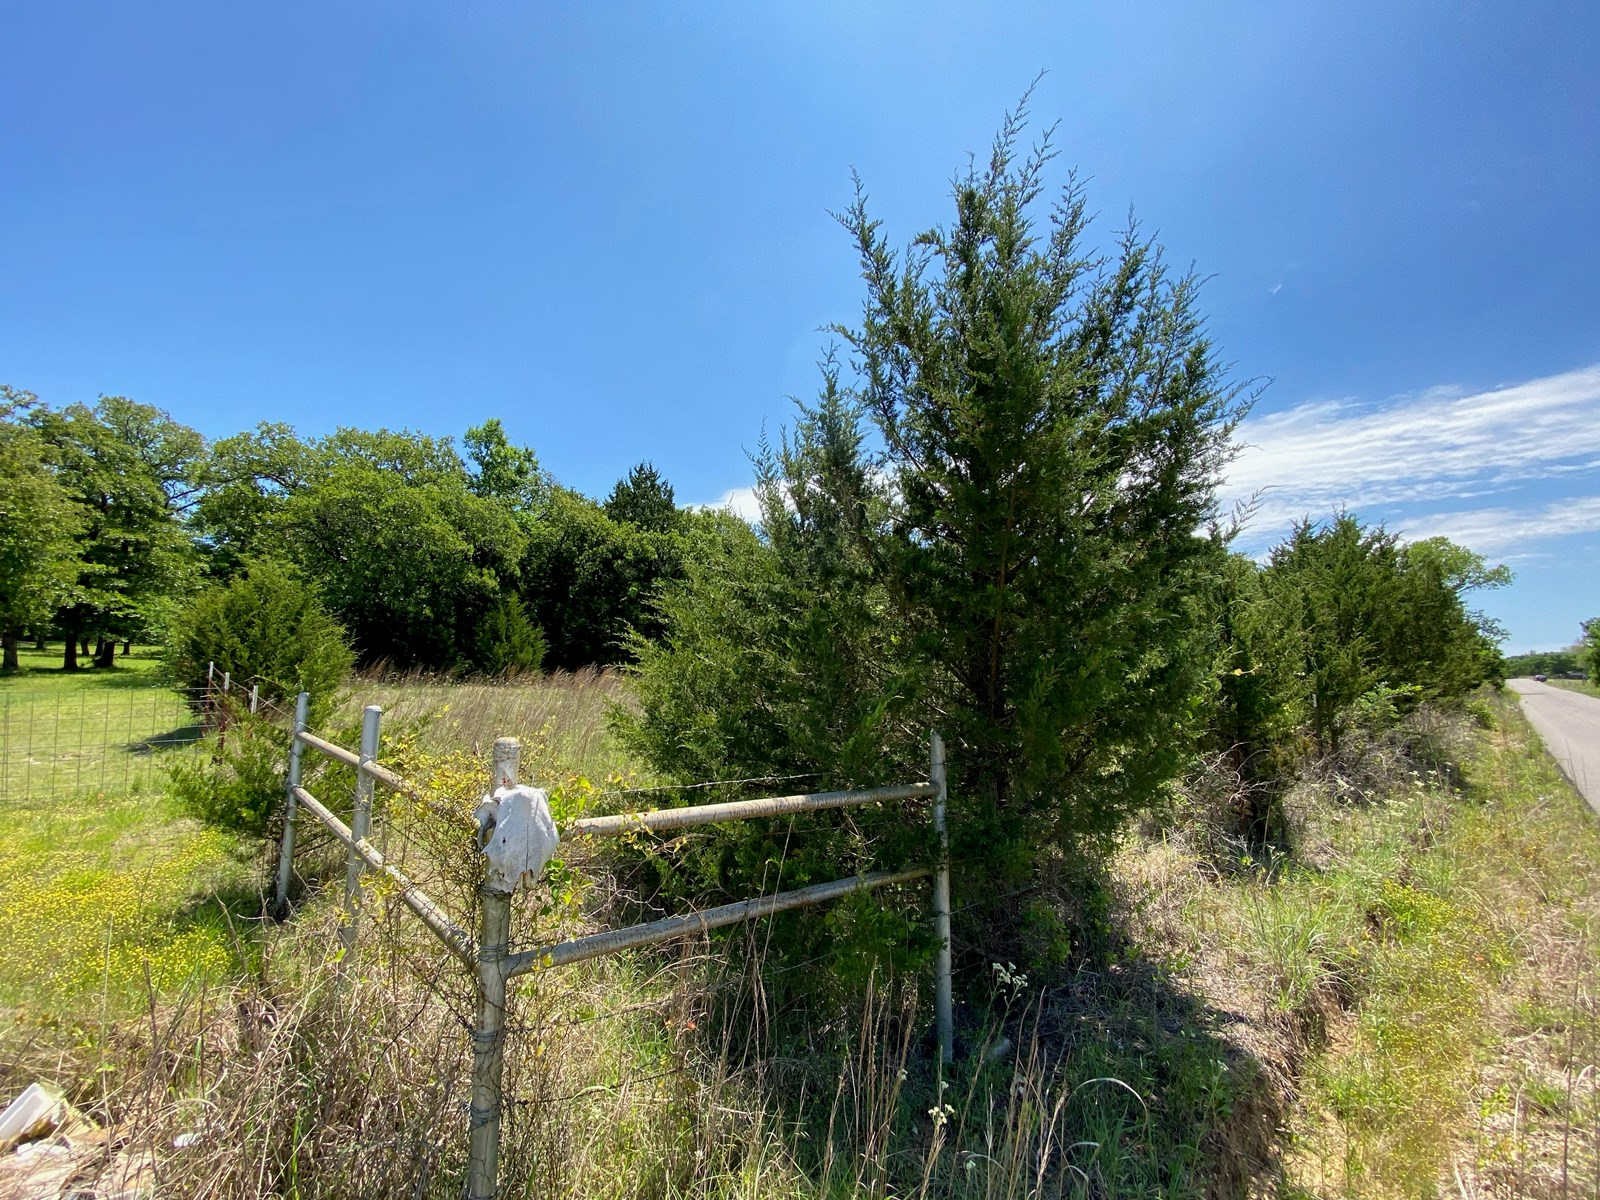 5 ACRE BUILDING LOT FOR SALE IN MARSHALL COUNTY